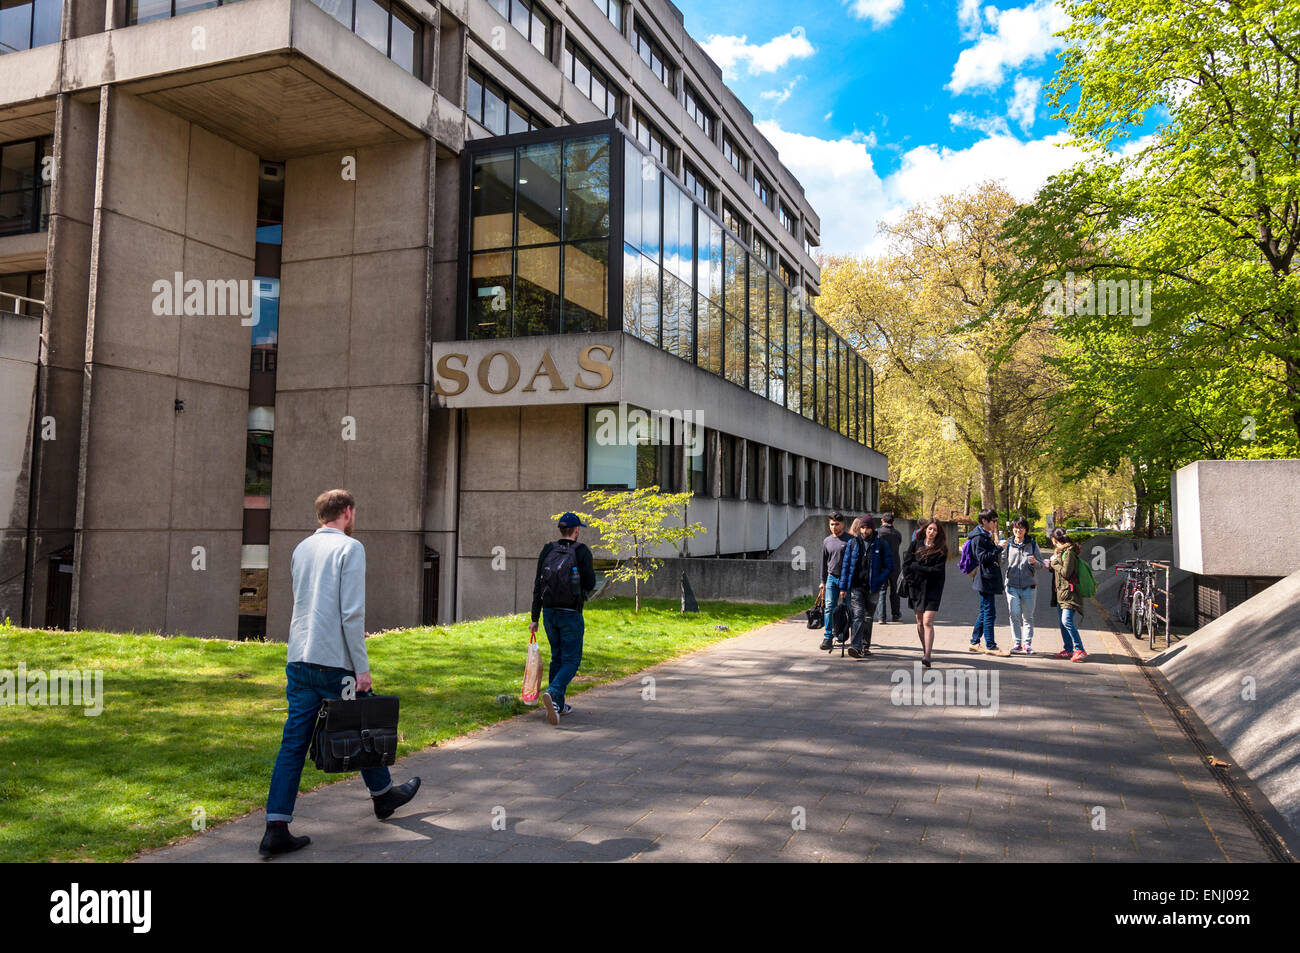 soas university of london essay Understanding research methods from university of london, soas university of london this mooc is about demystifying research and research methods it will outline the fundamentals of doing research, aimed primarily, but not exclusively, at the.